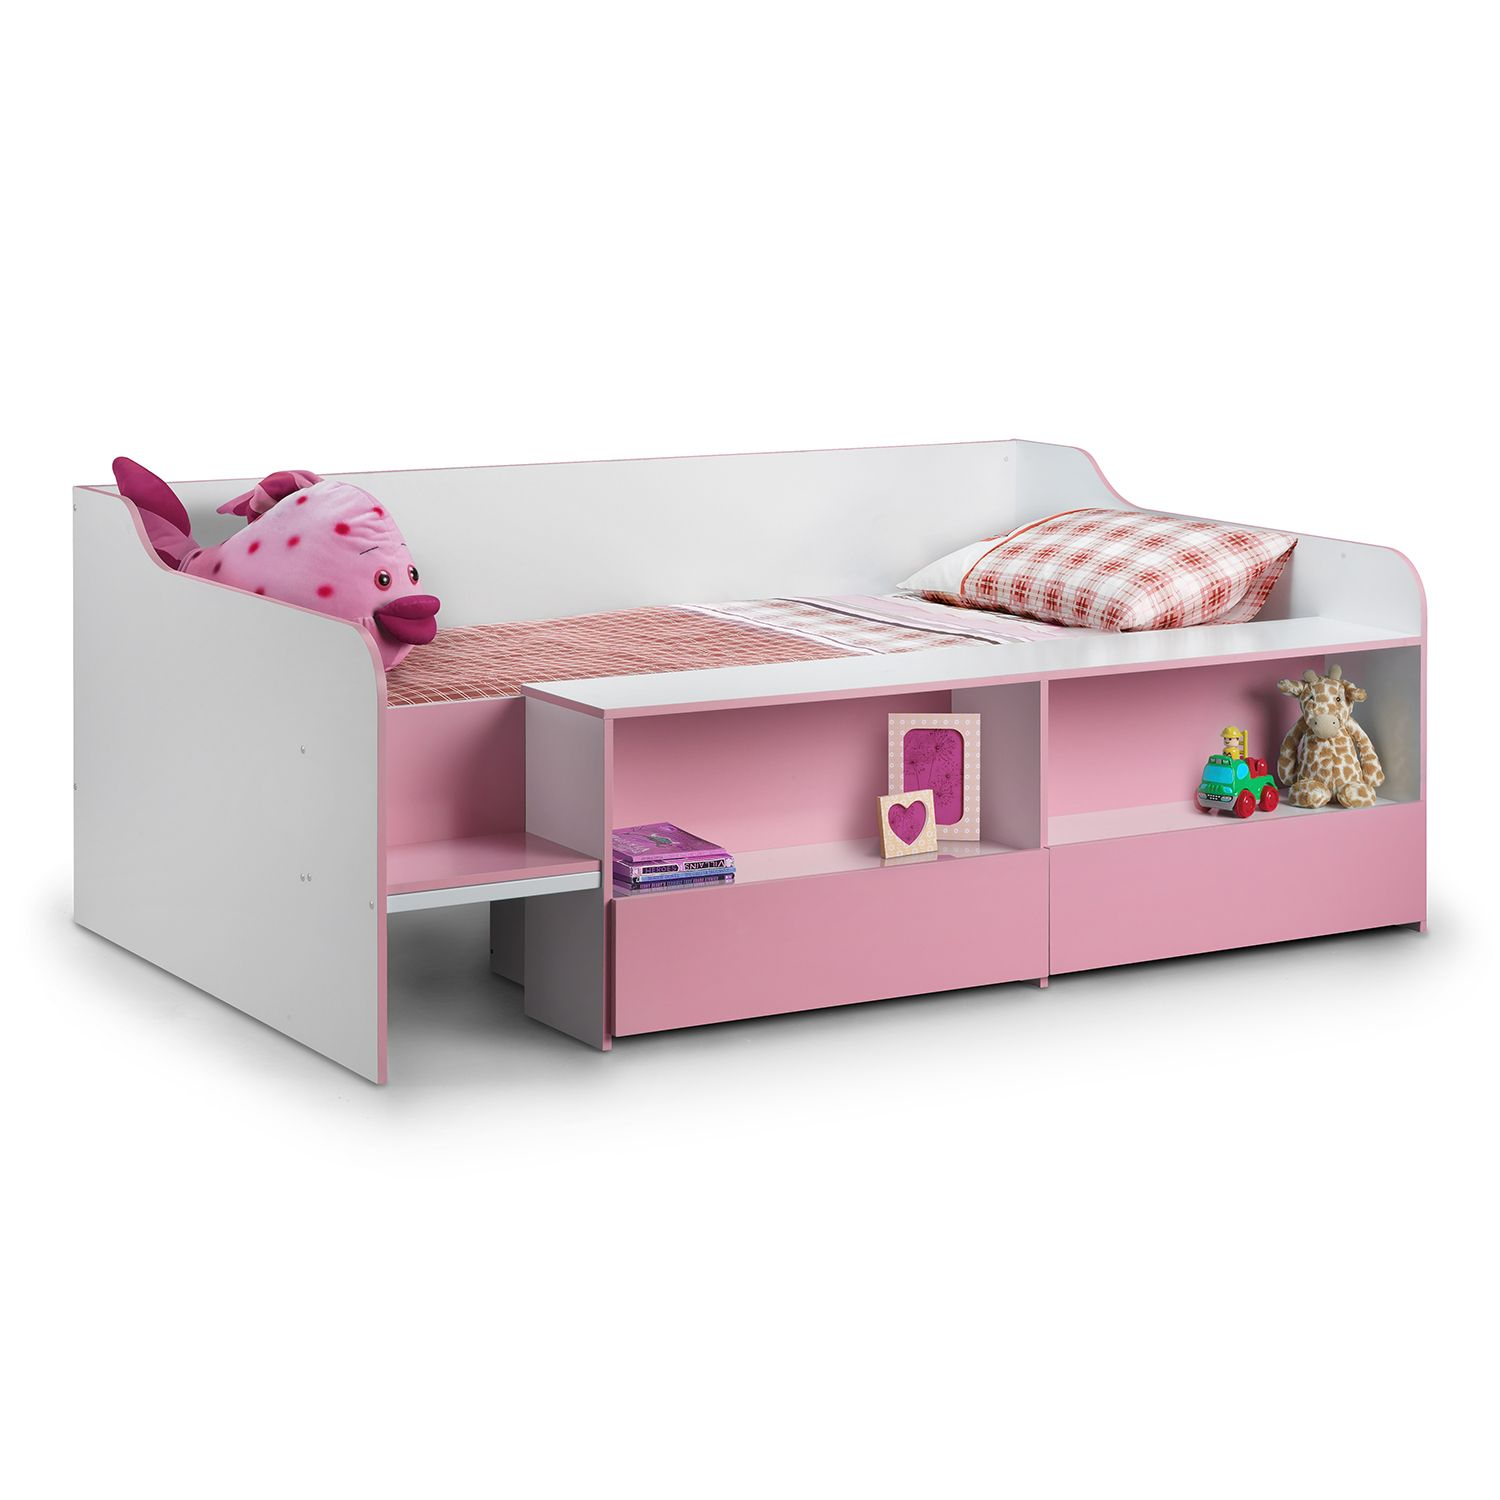 King size loft bed with stairs  Stella Low Sleeper Bed FREE DELIVERY Next Day  Select Day up to